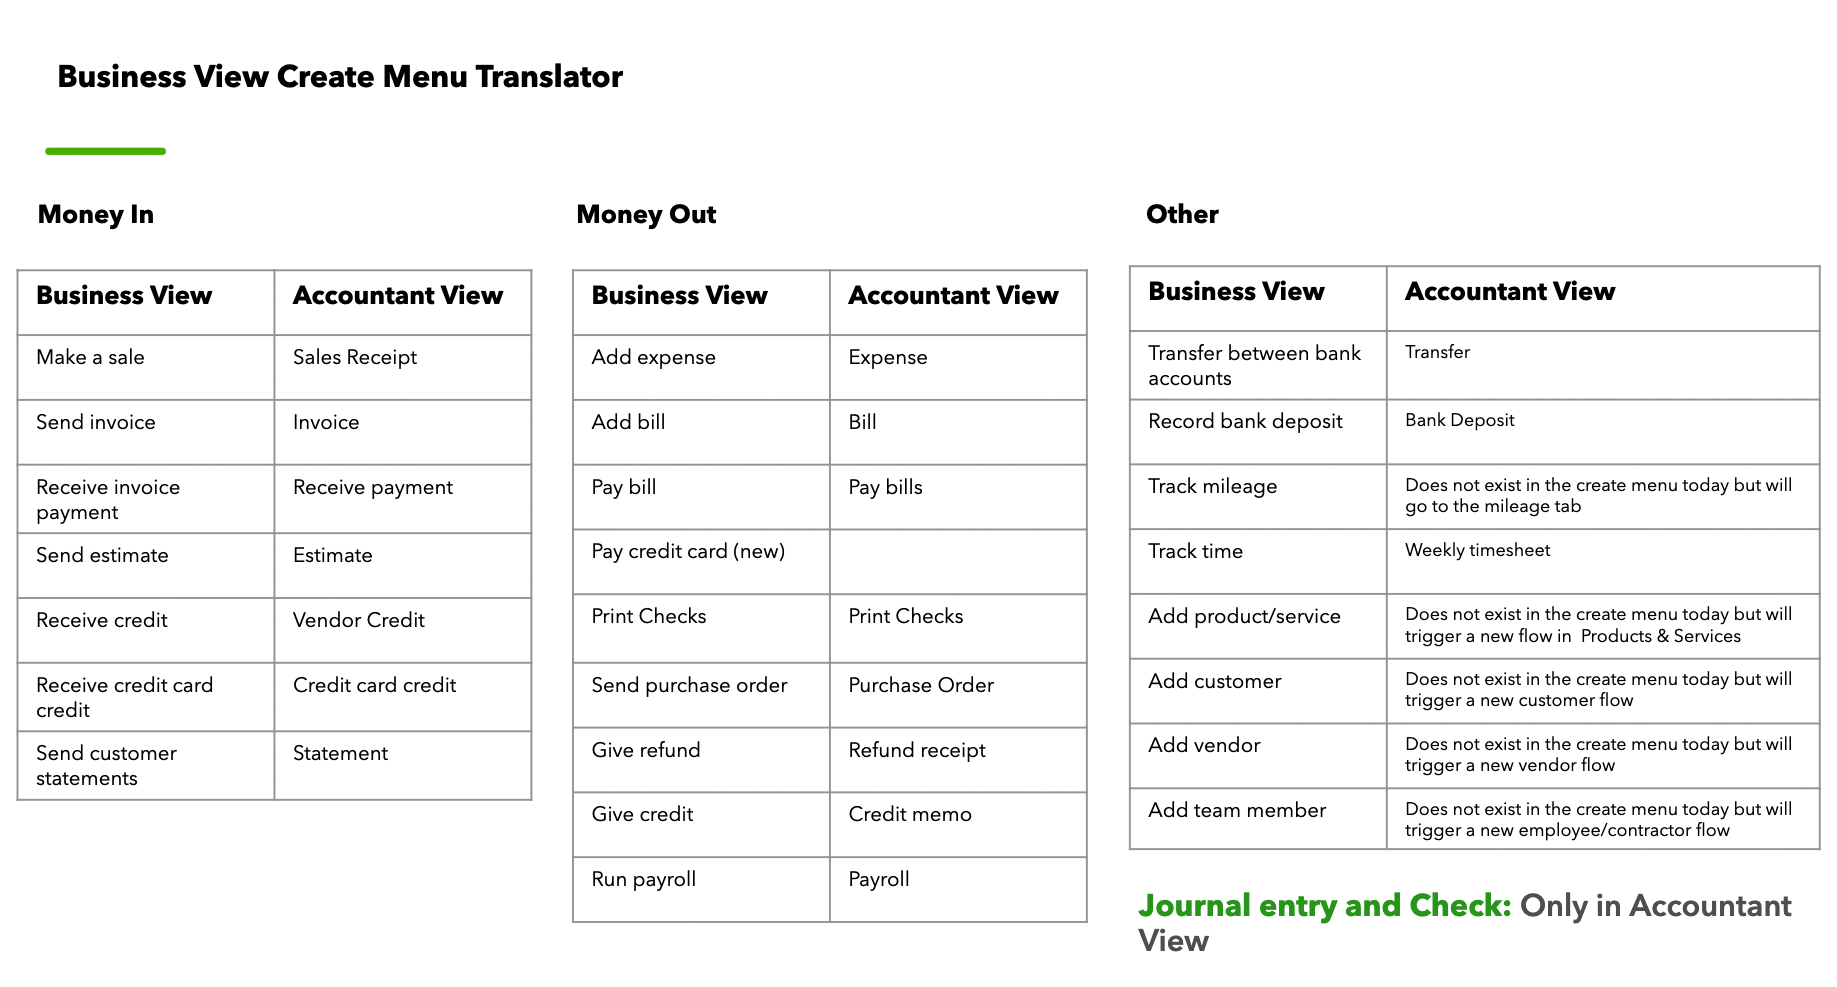 Business View Translator